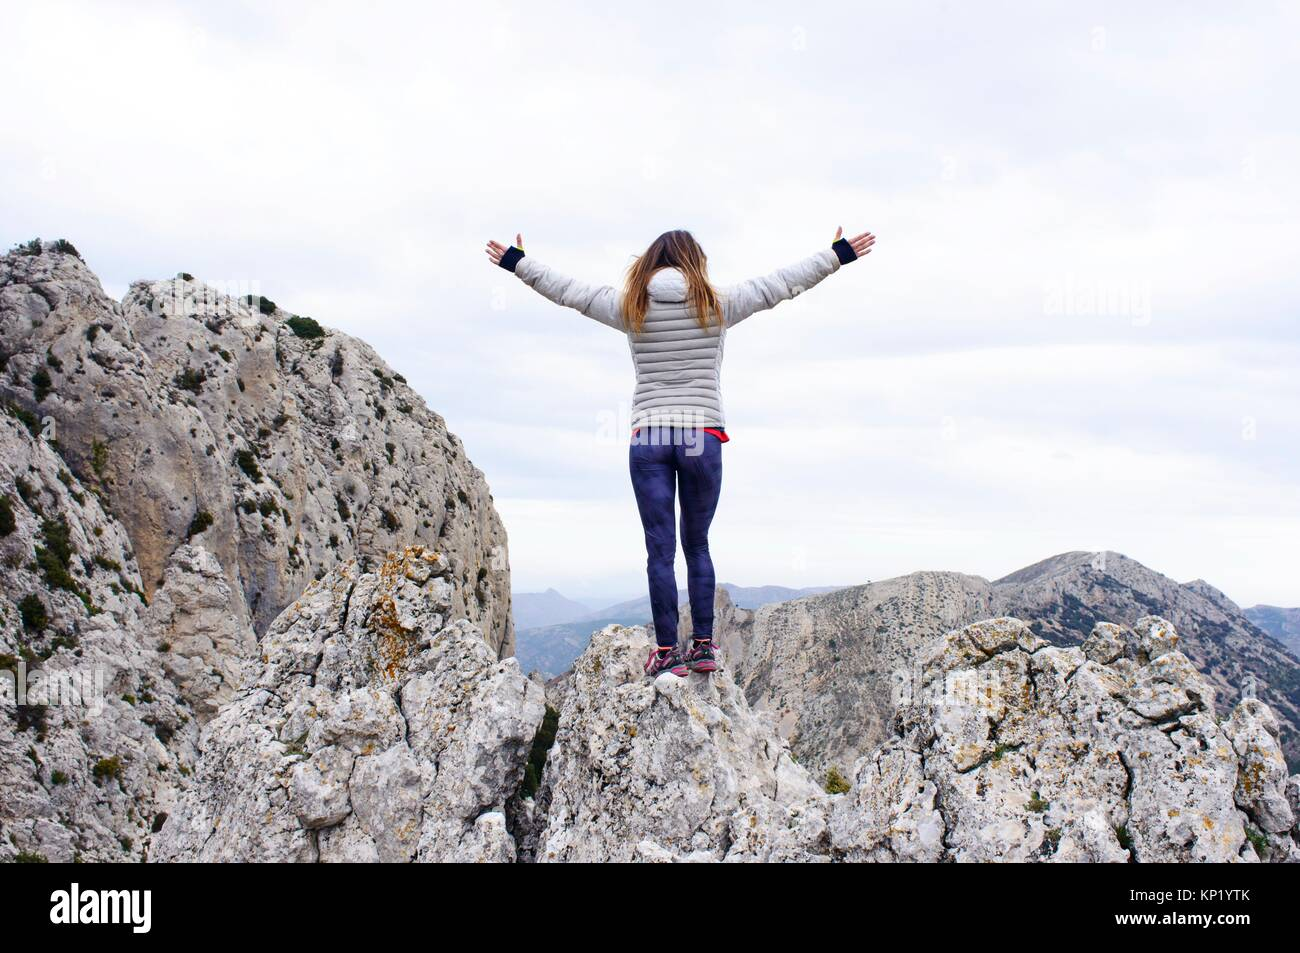 Woman on top of the mountain in Quatretondeta, Alicante, Valencia, Spain - Stock Image